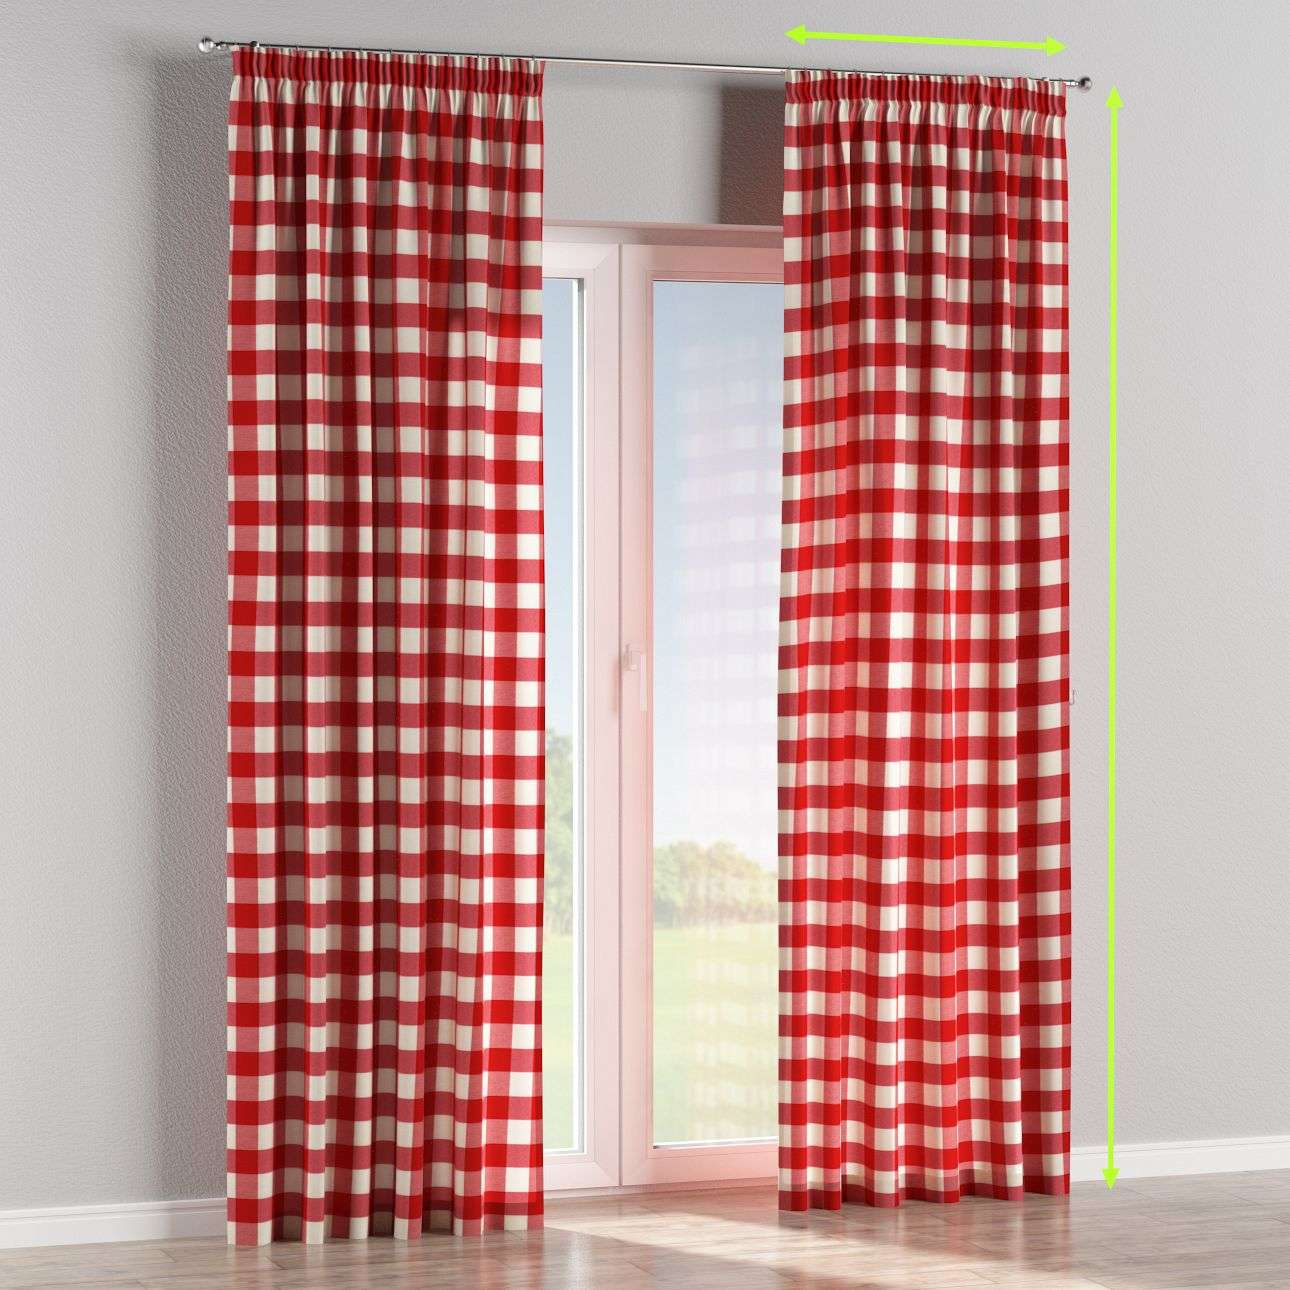 Pencil pleat lined curtains in collection Quadro, fabric: 136-18